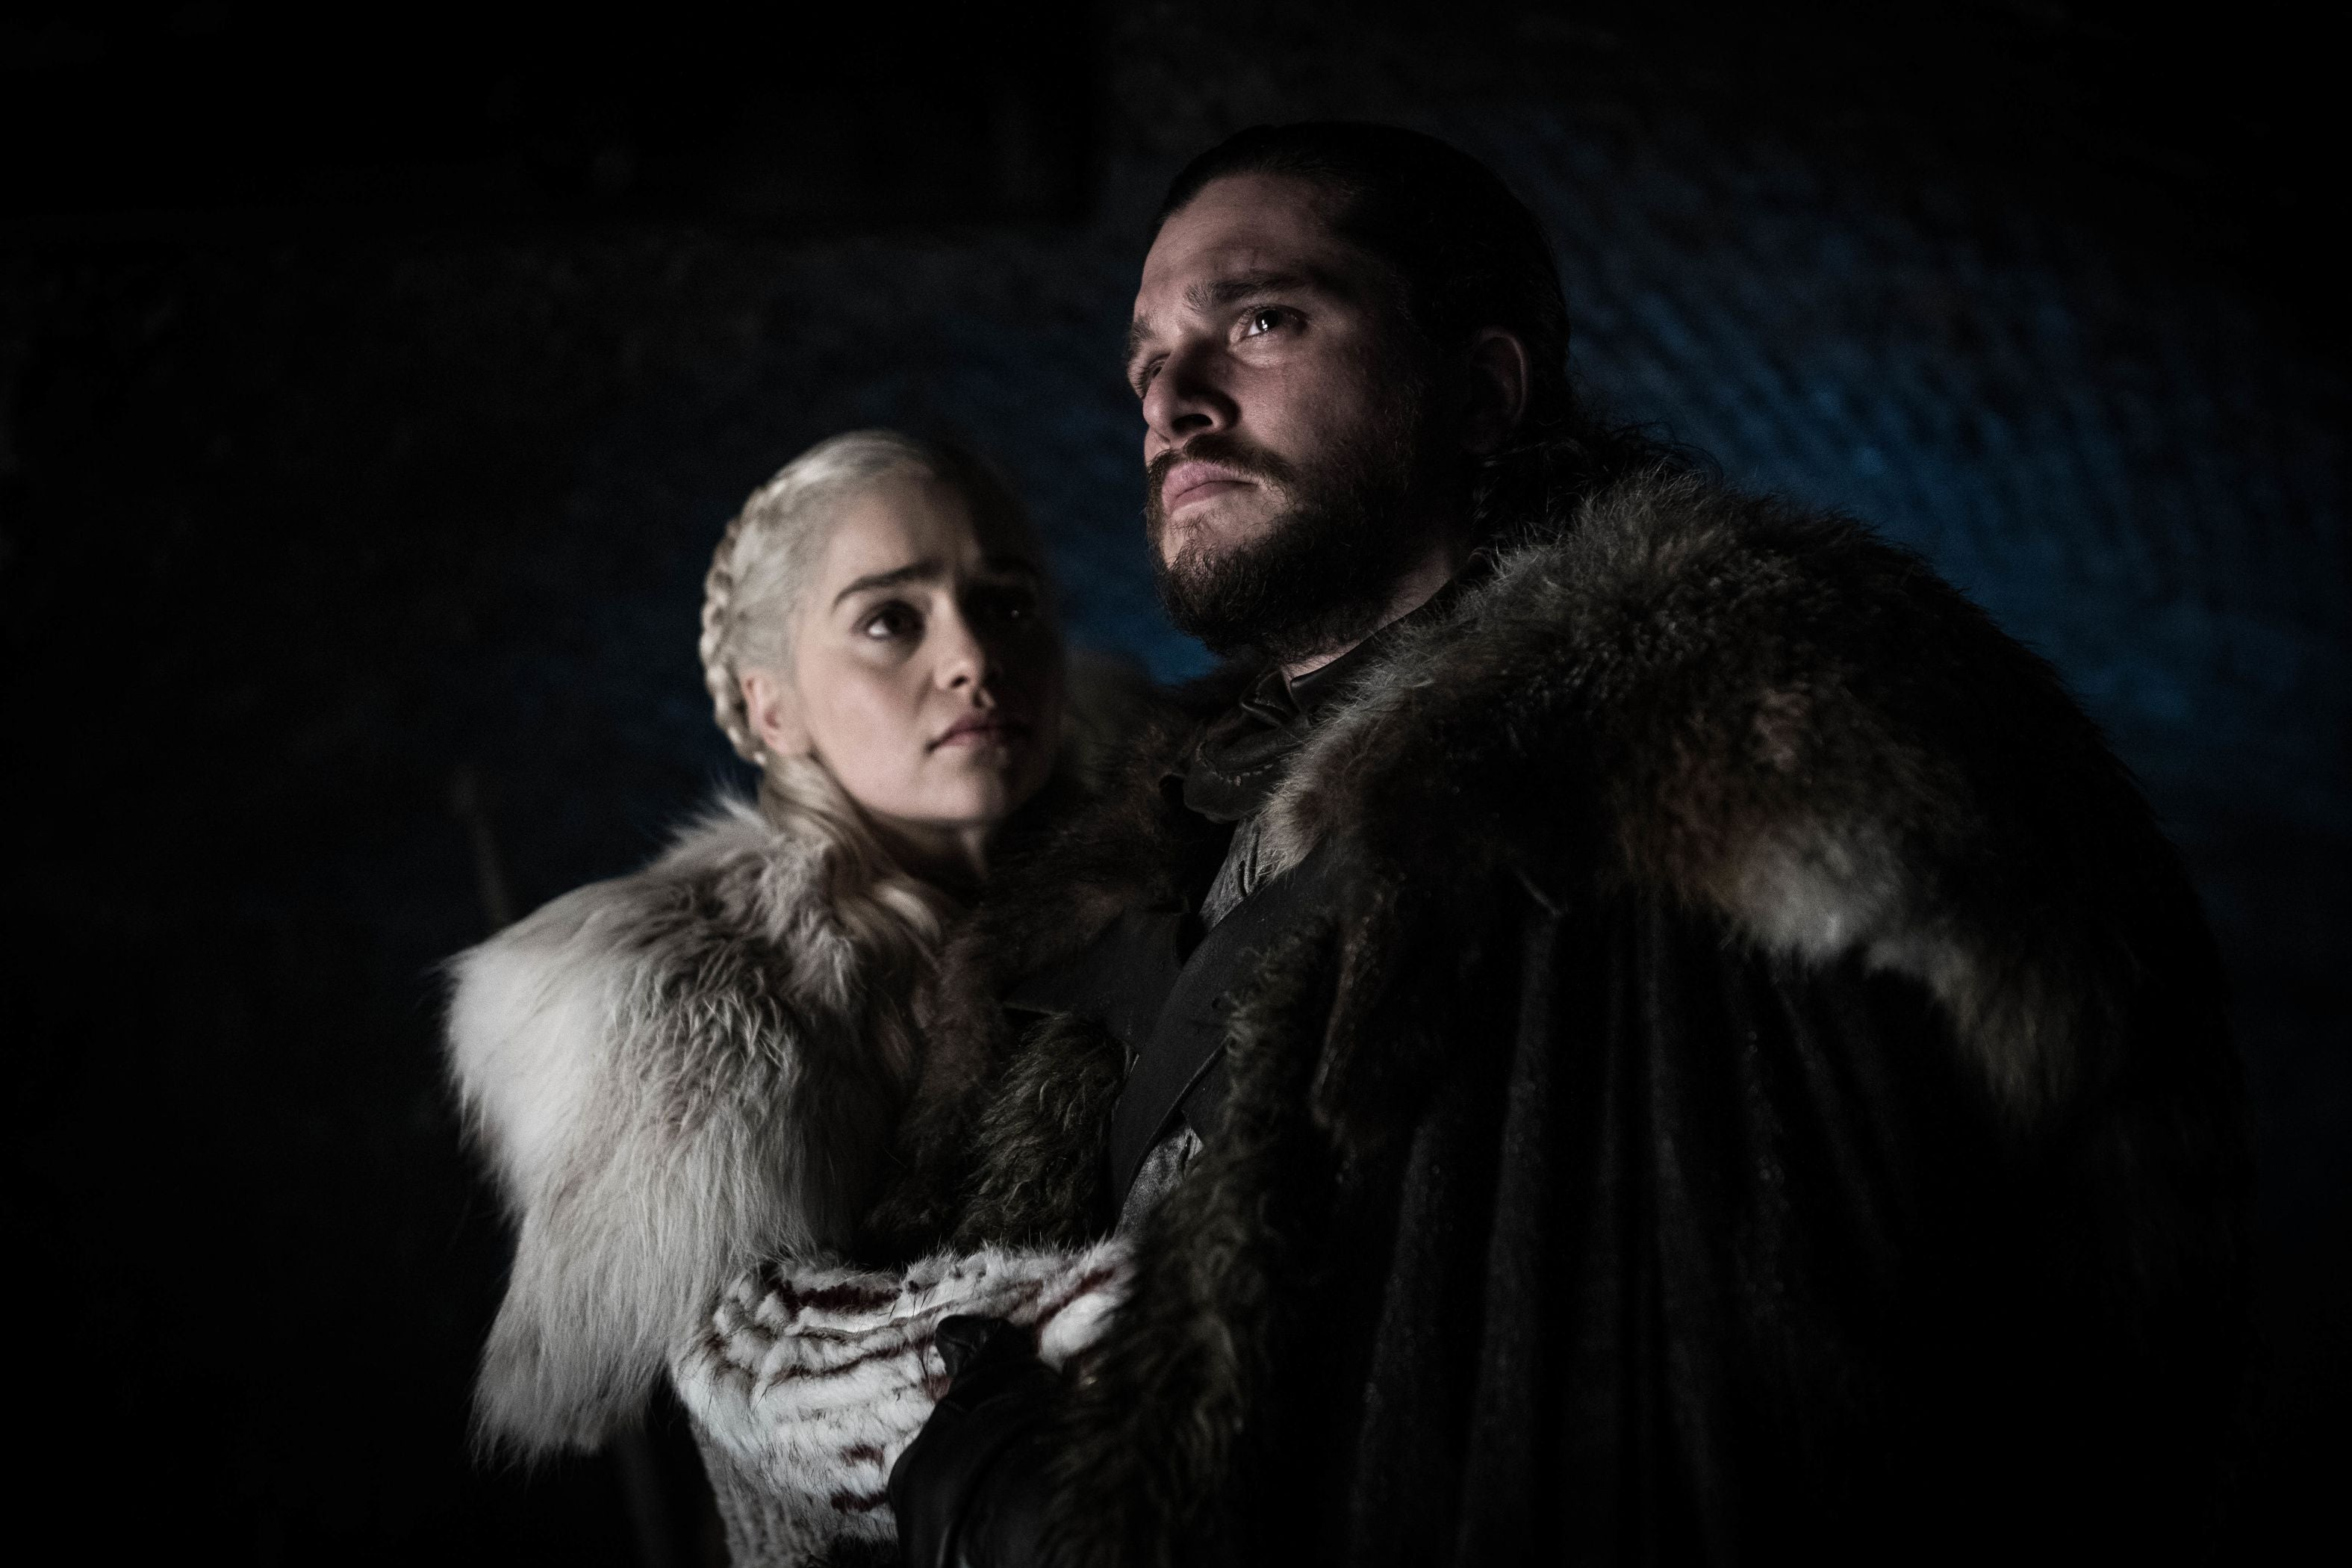 Game Of Thrones Season 8 Episode 2 Jon Snow Aegon Targaryen Daenerys Targaryen